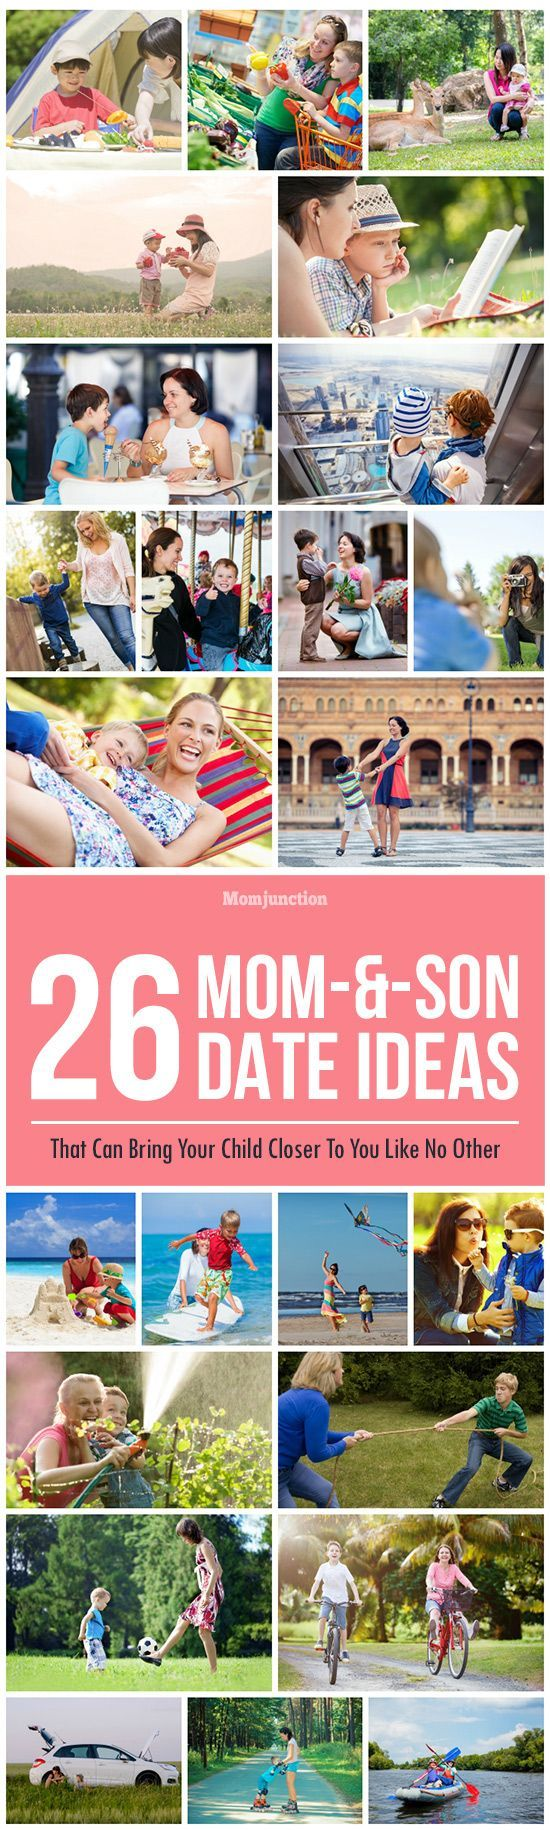 26 Mom And Son Date Ideas That Can Bring Your Child Closer To You Like No Other! #9 Would Be Pure Joy!